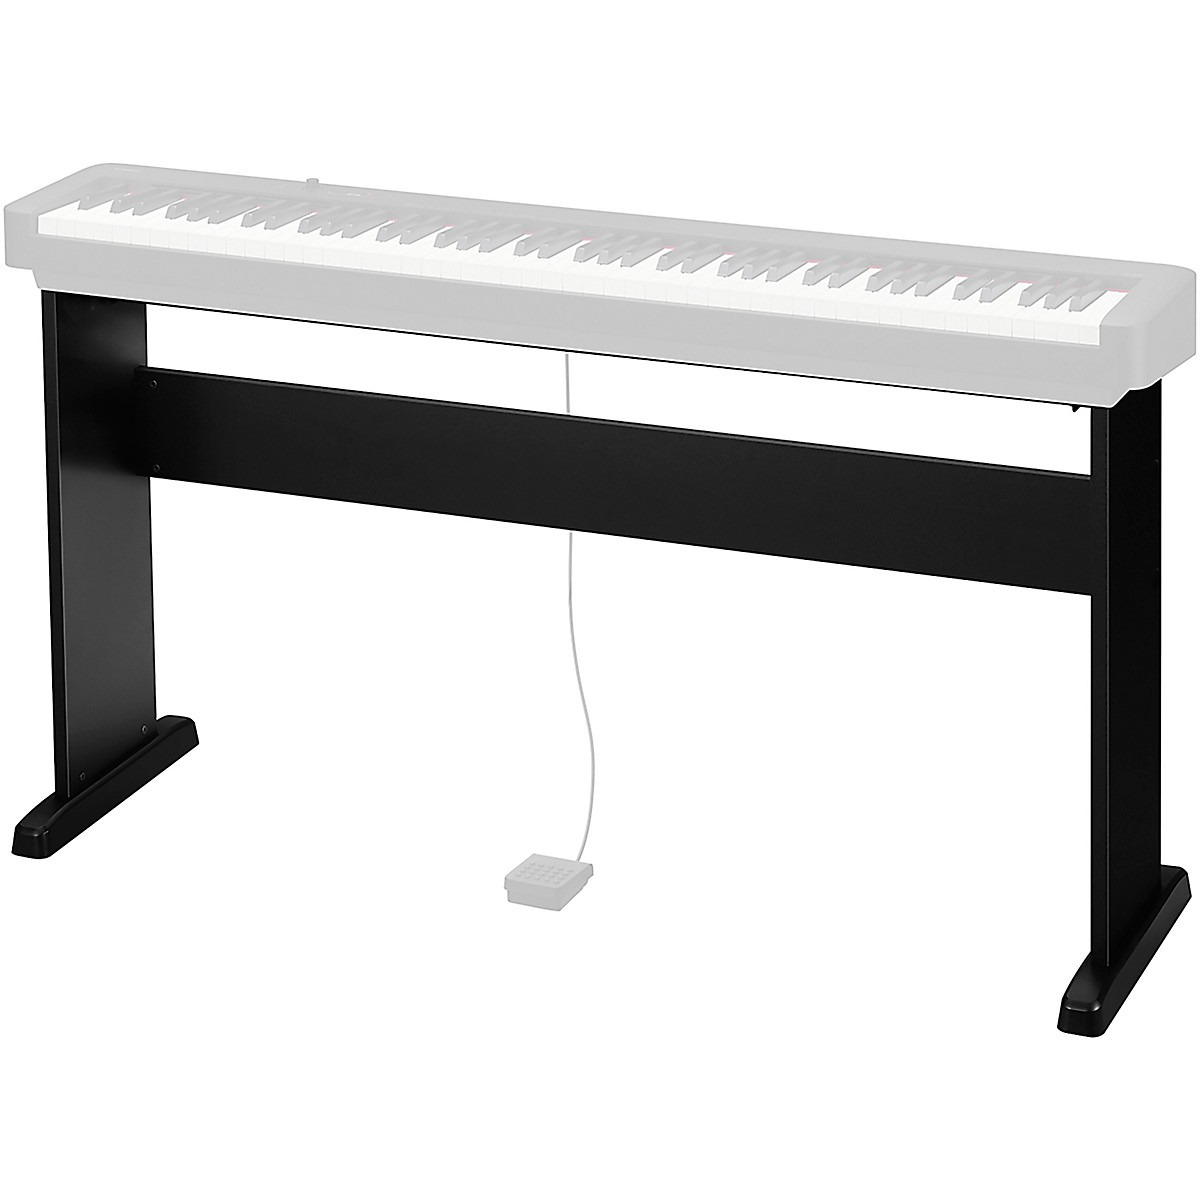 Casio CS-46 Stand for CDP-S100 / CDP-S350 Digital Pianos